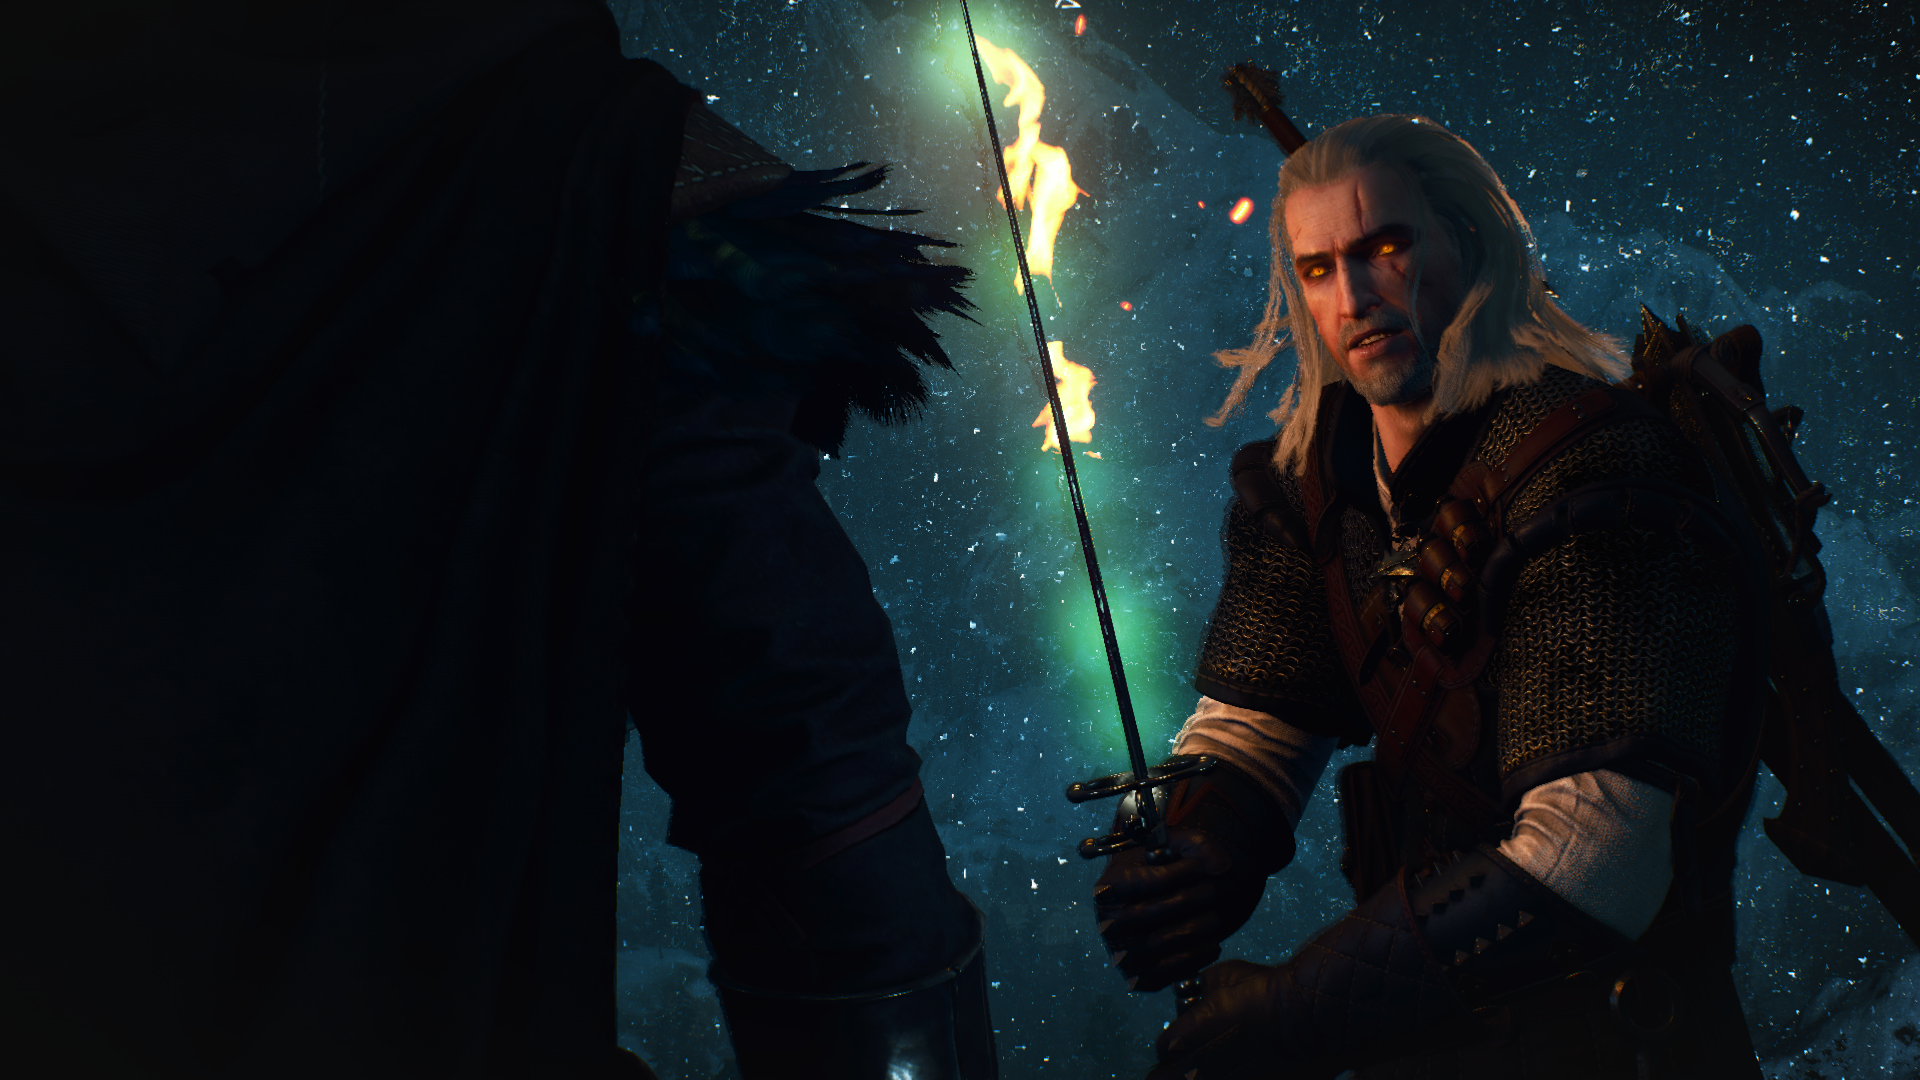 The Witcher 3 18.08.2019 22_22_53.png - Witcher 3: Wild Hunt, the